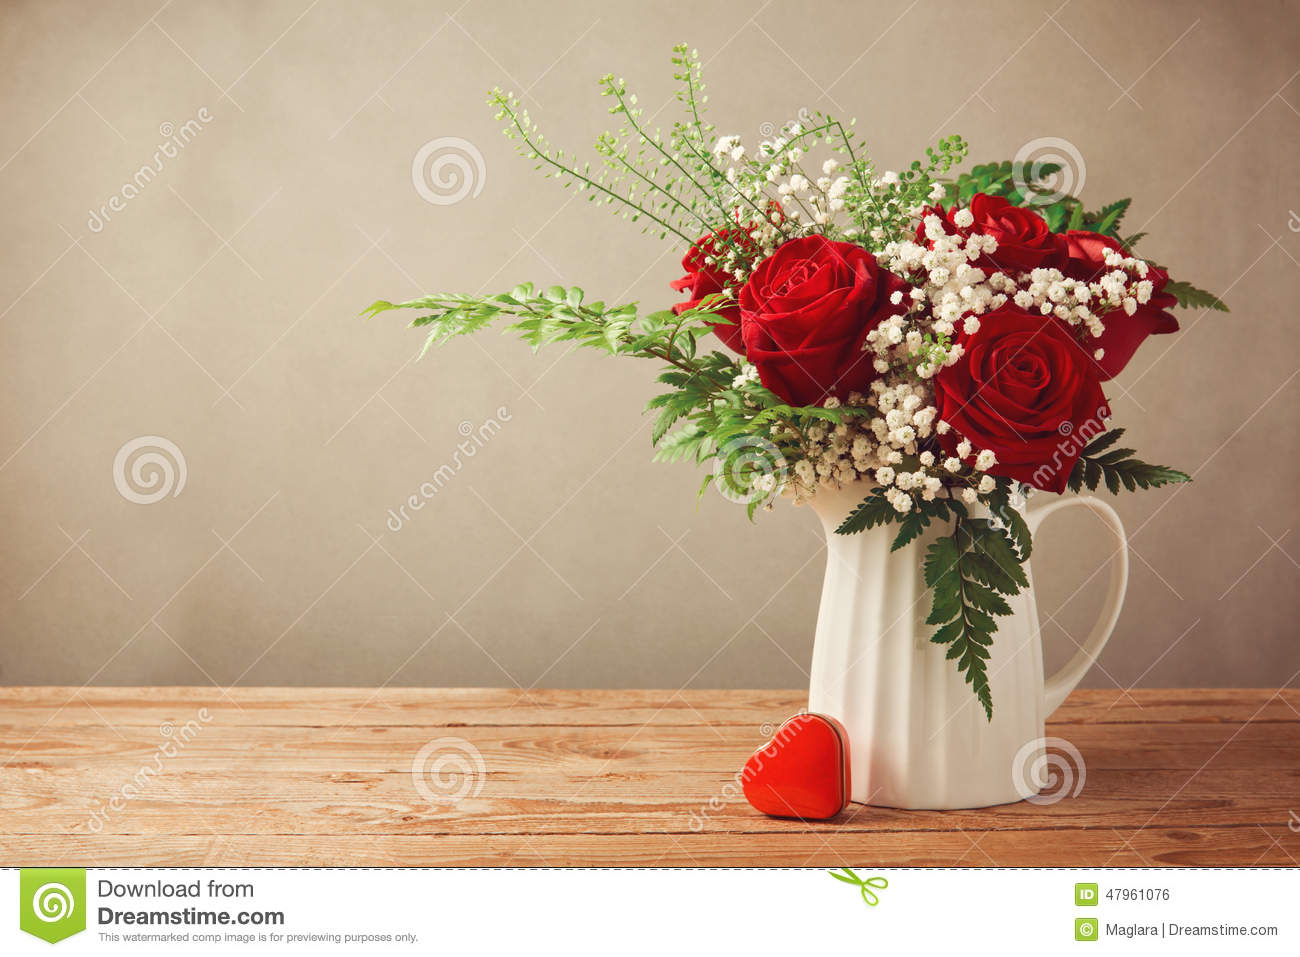 Rose flower bouquet and heart shape box on wooden table with copy space